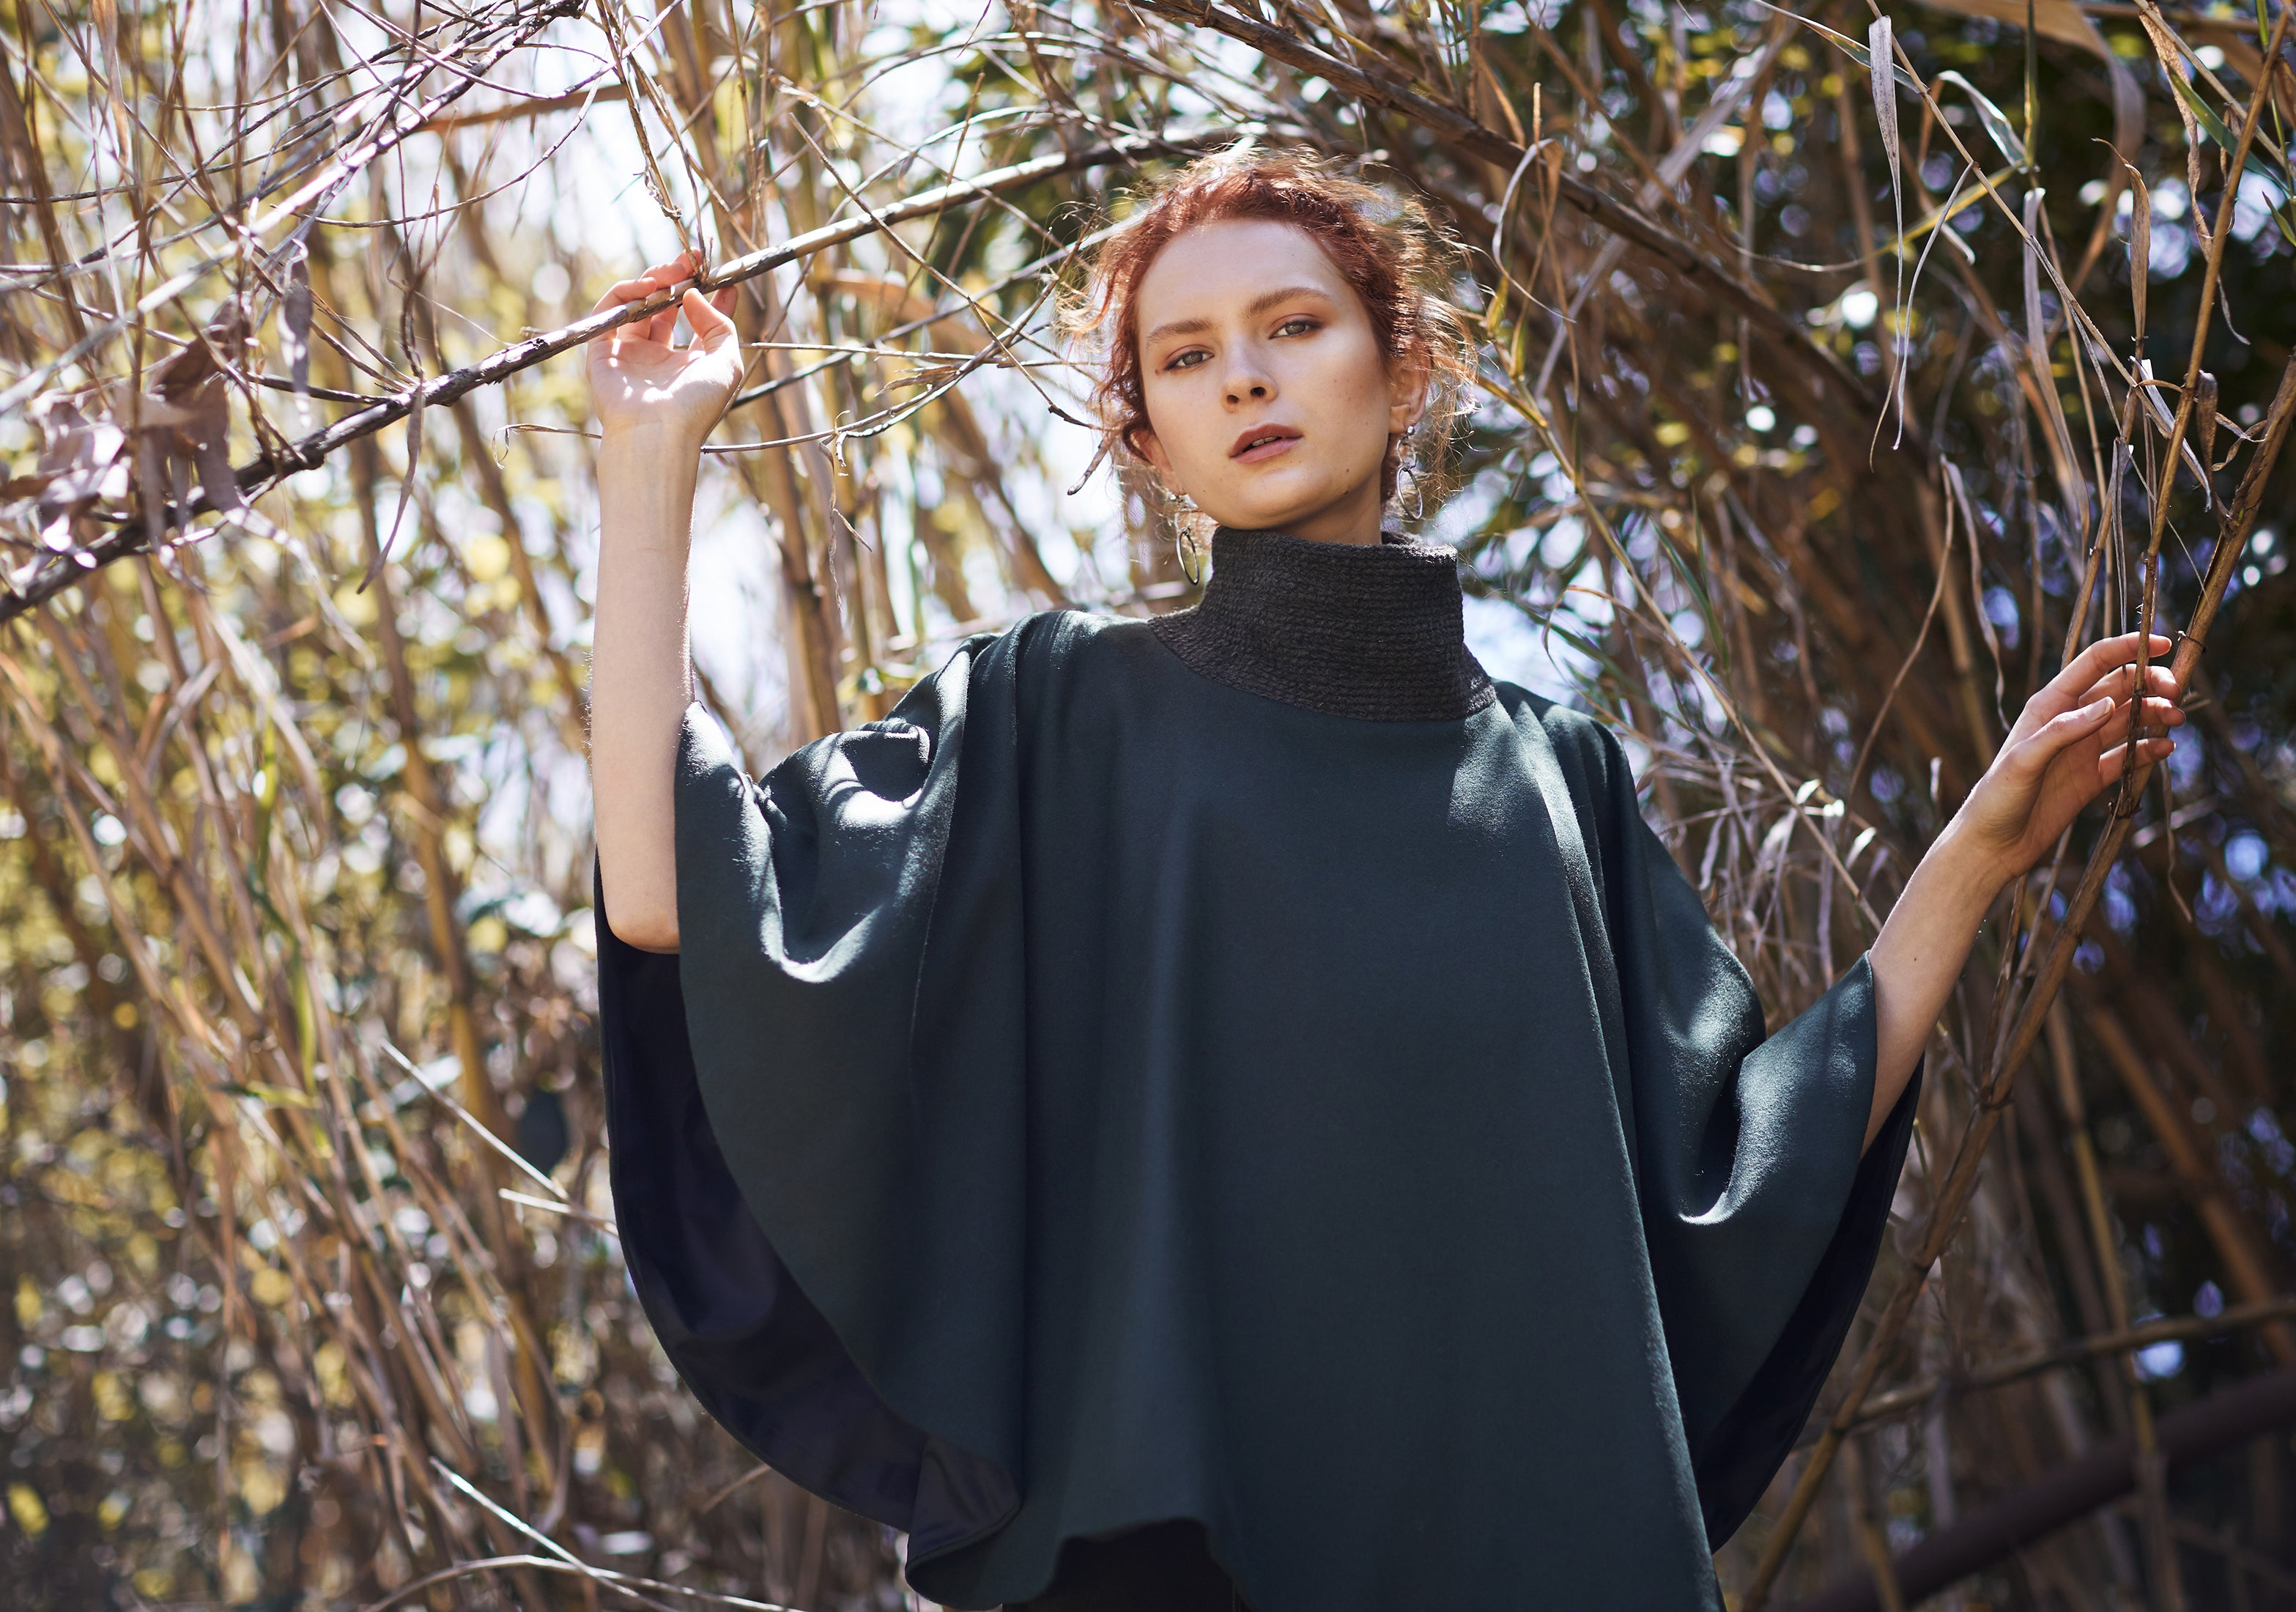 keegan AW19 Woodland Campaign Ethical Fashion Made in Melbourne Australia Green Olive Cape Wool Bamboo